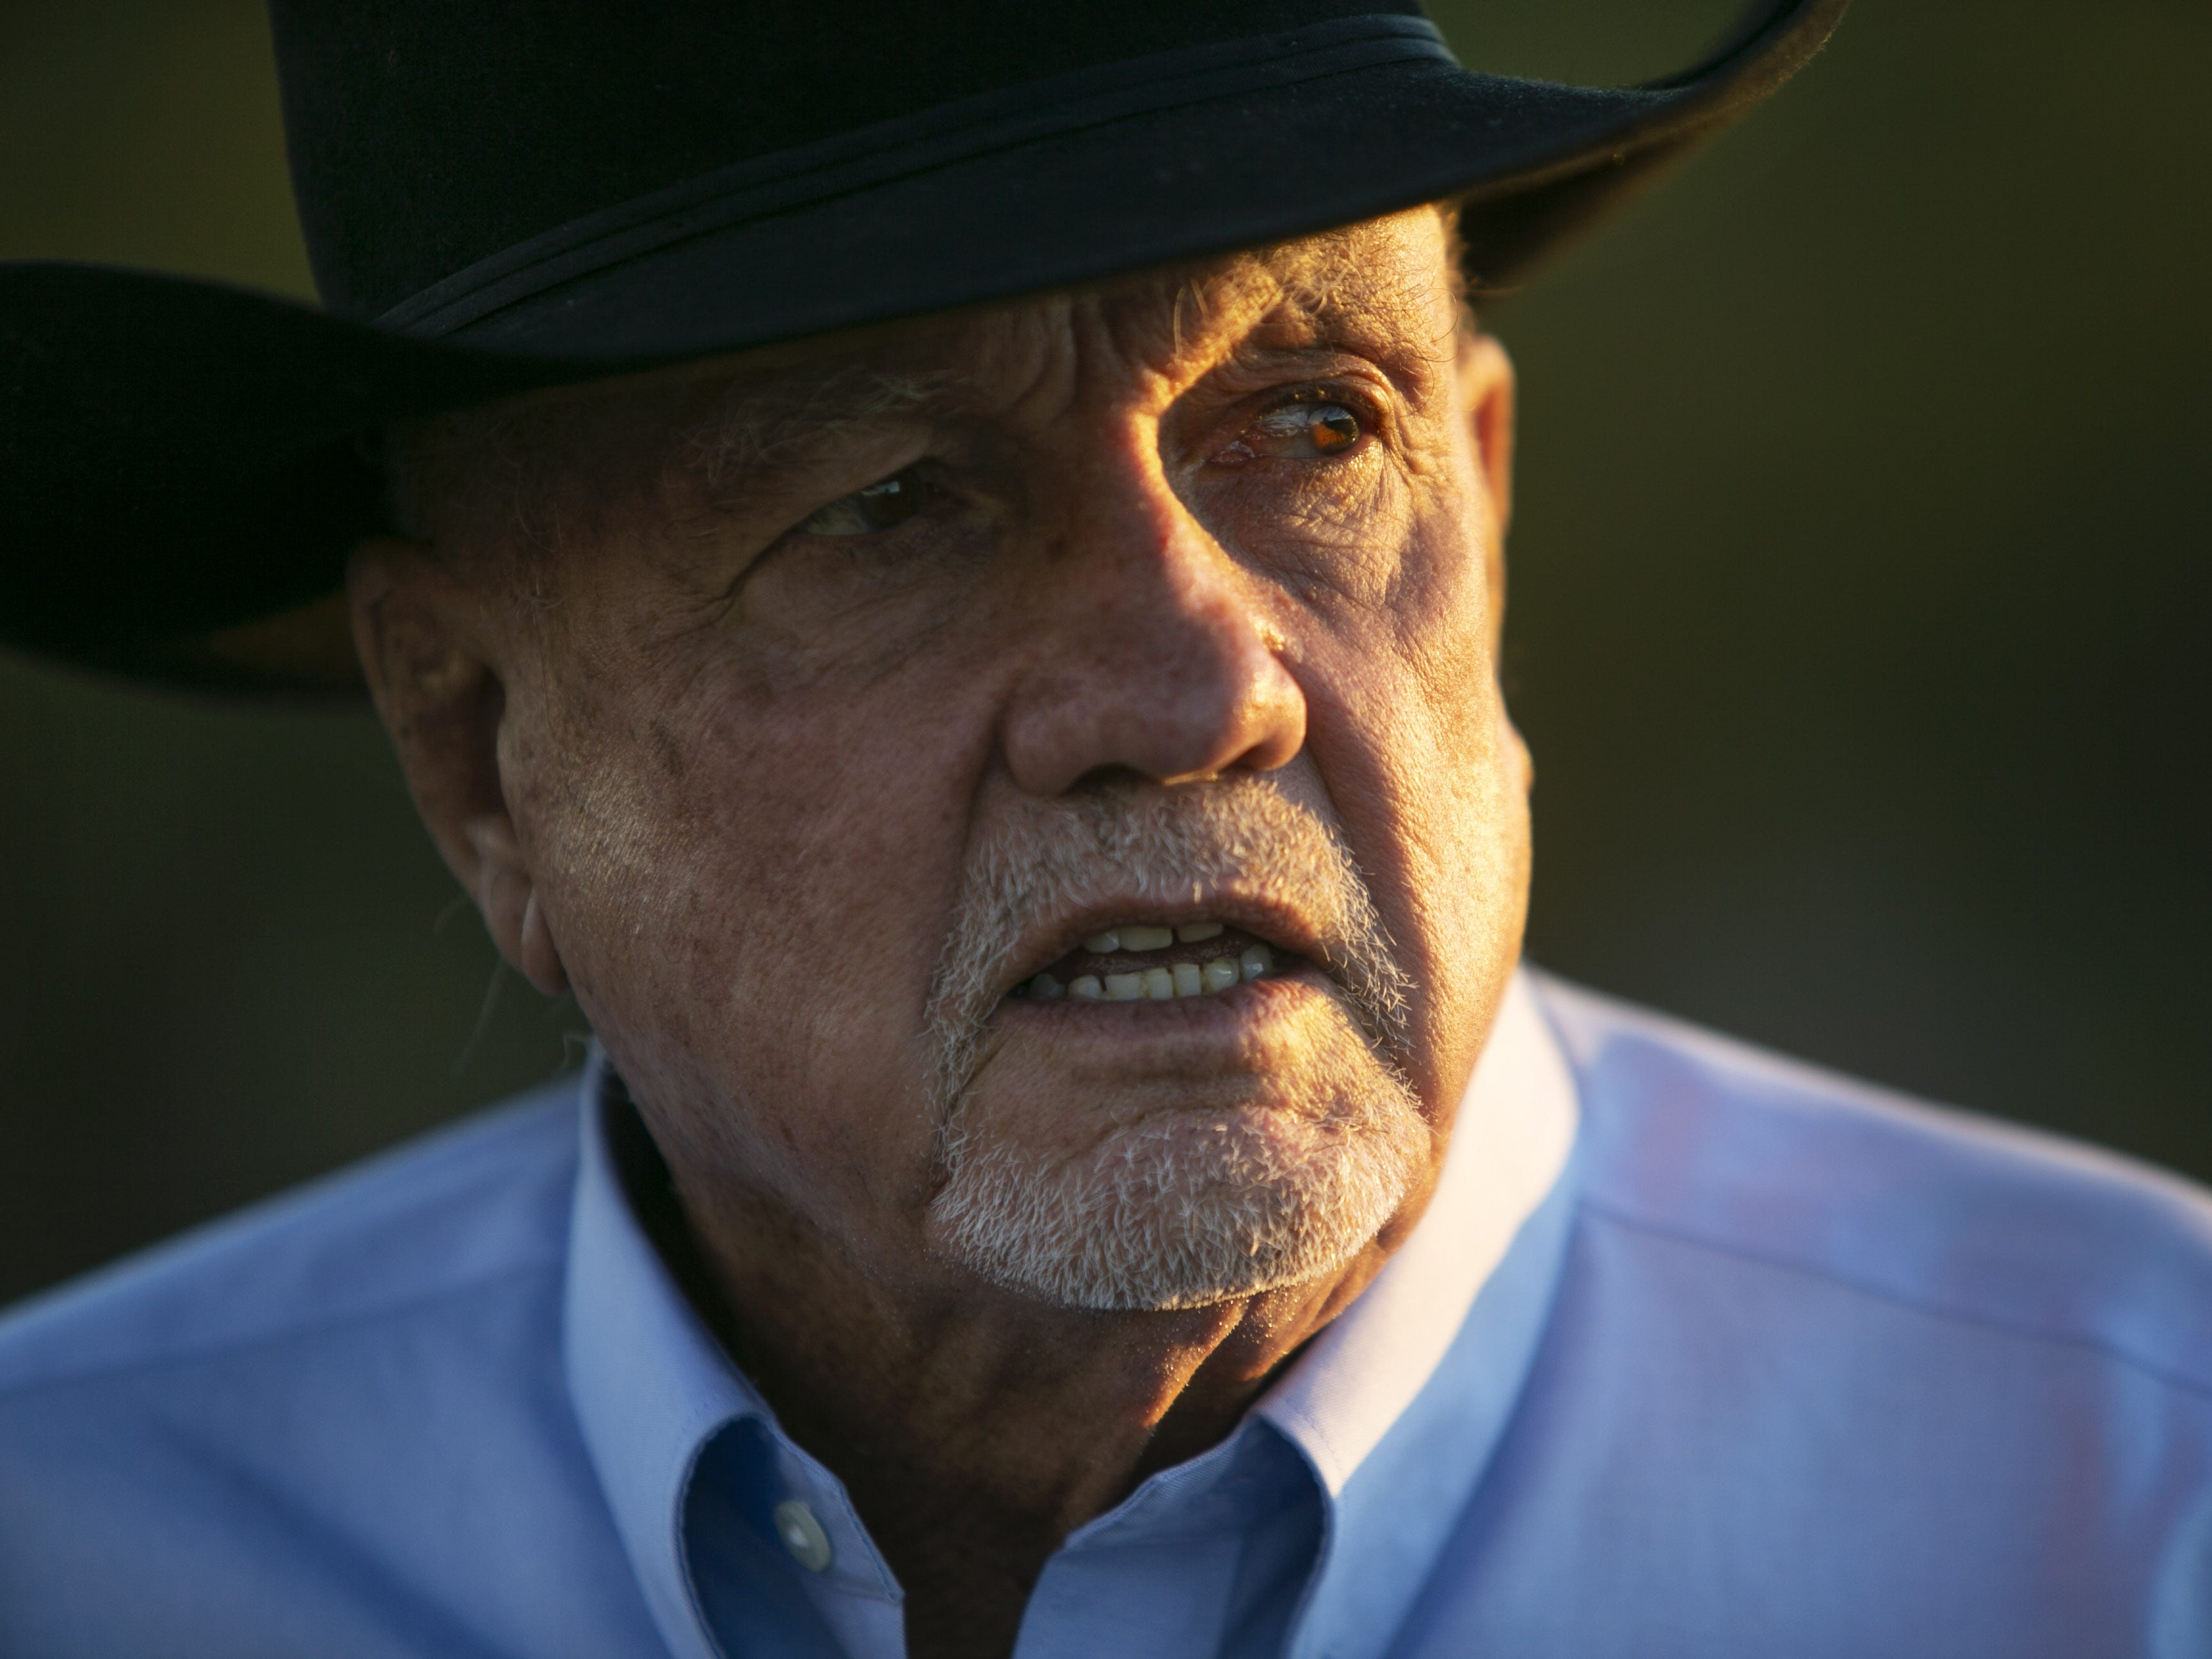 Alan Day of Oro Valley, the brother of former Supreme Court Justice Sandra Day O'Connor, at the Lazy B Ranch, a cattle ranch outside of Duncan, Ariz., on Nov. 2, 2018. Former Supreme Court Justice Sandra Day O'Connor grew up on the ranch.